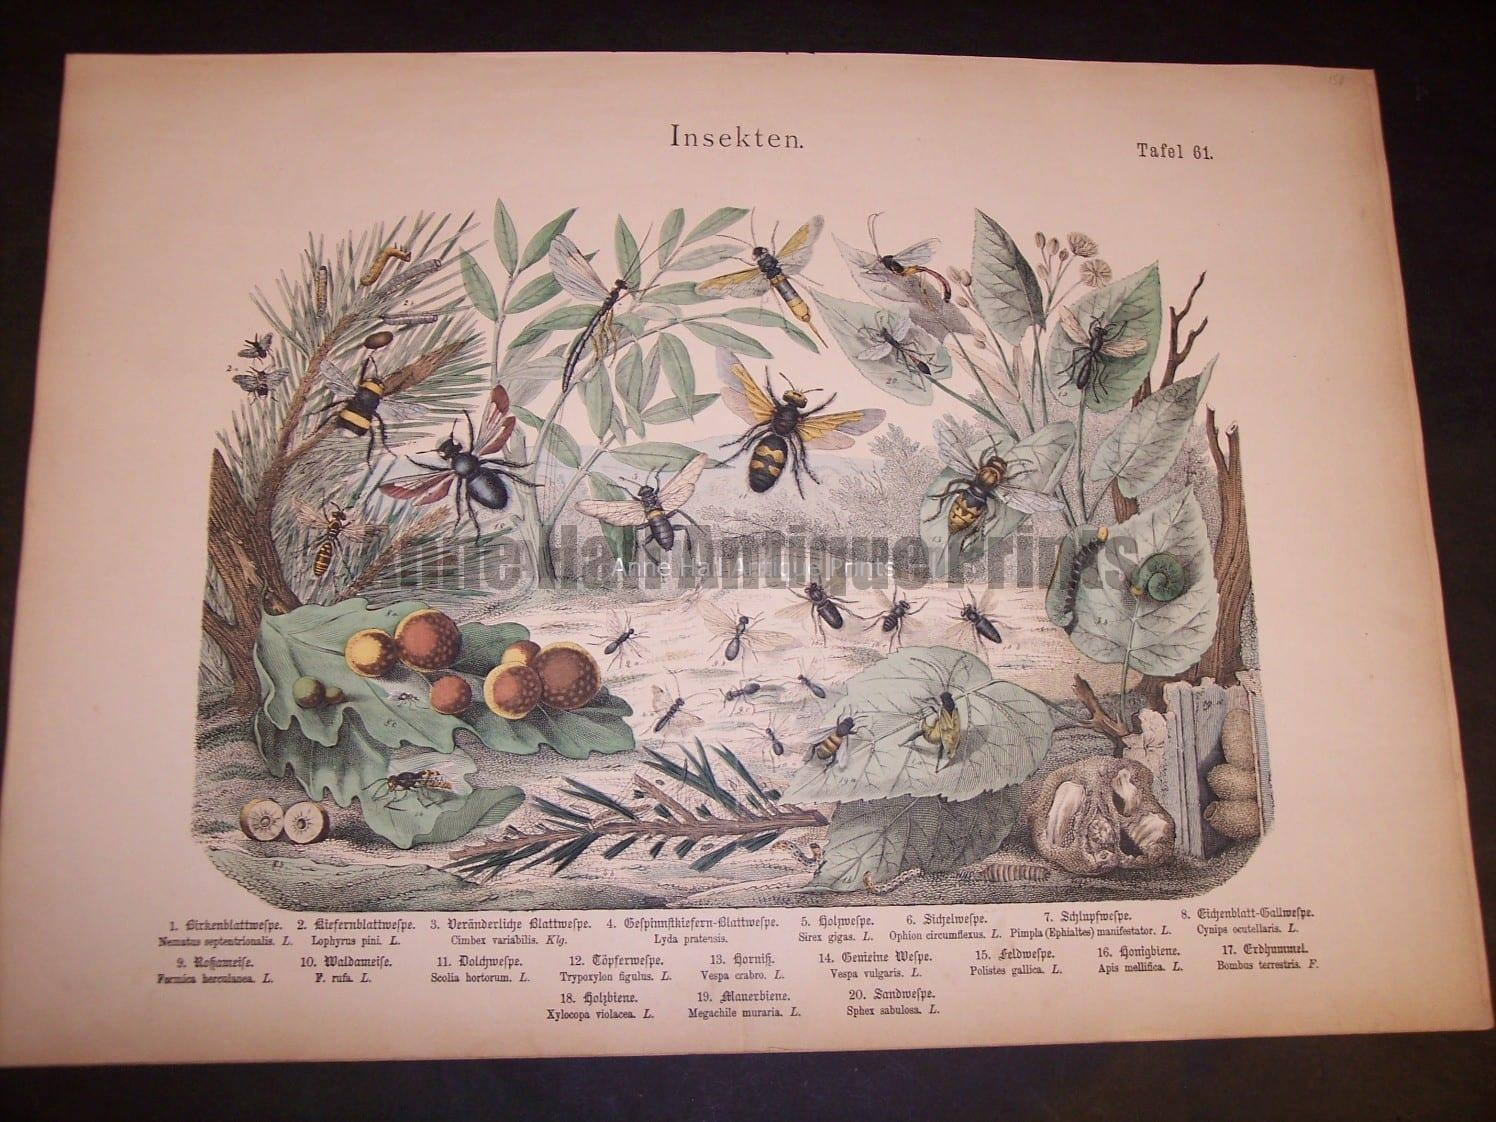 Shubert insects